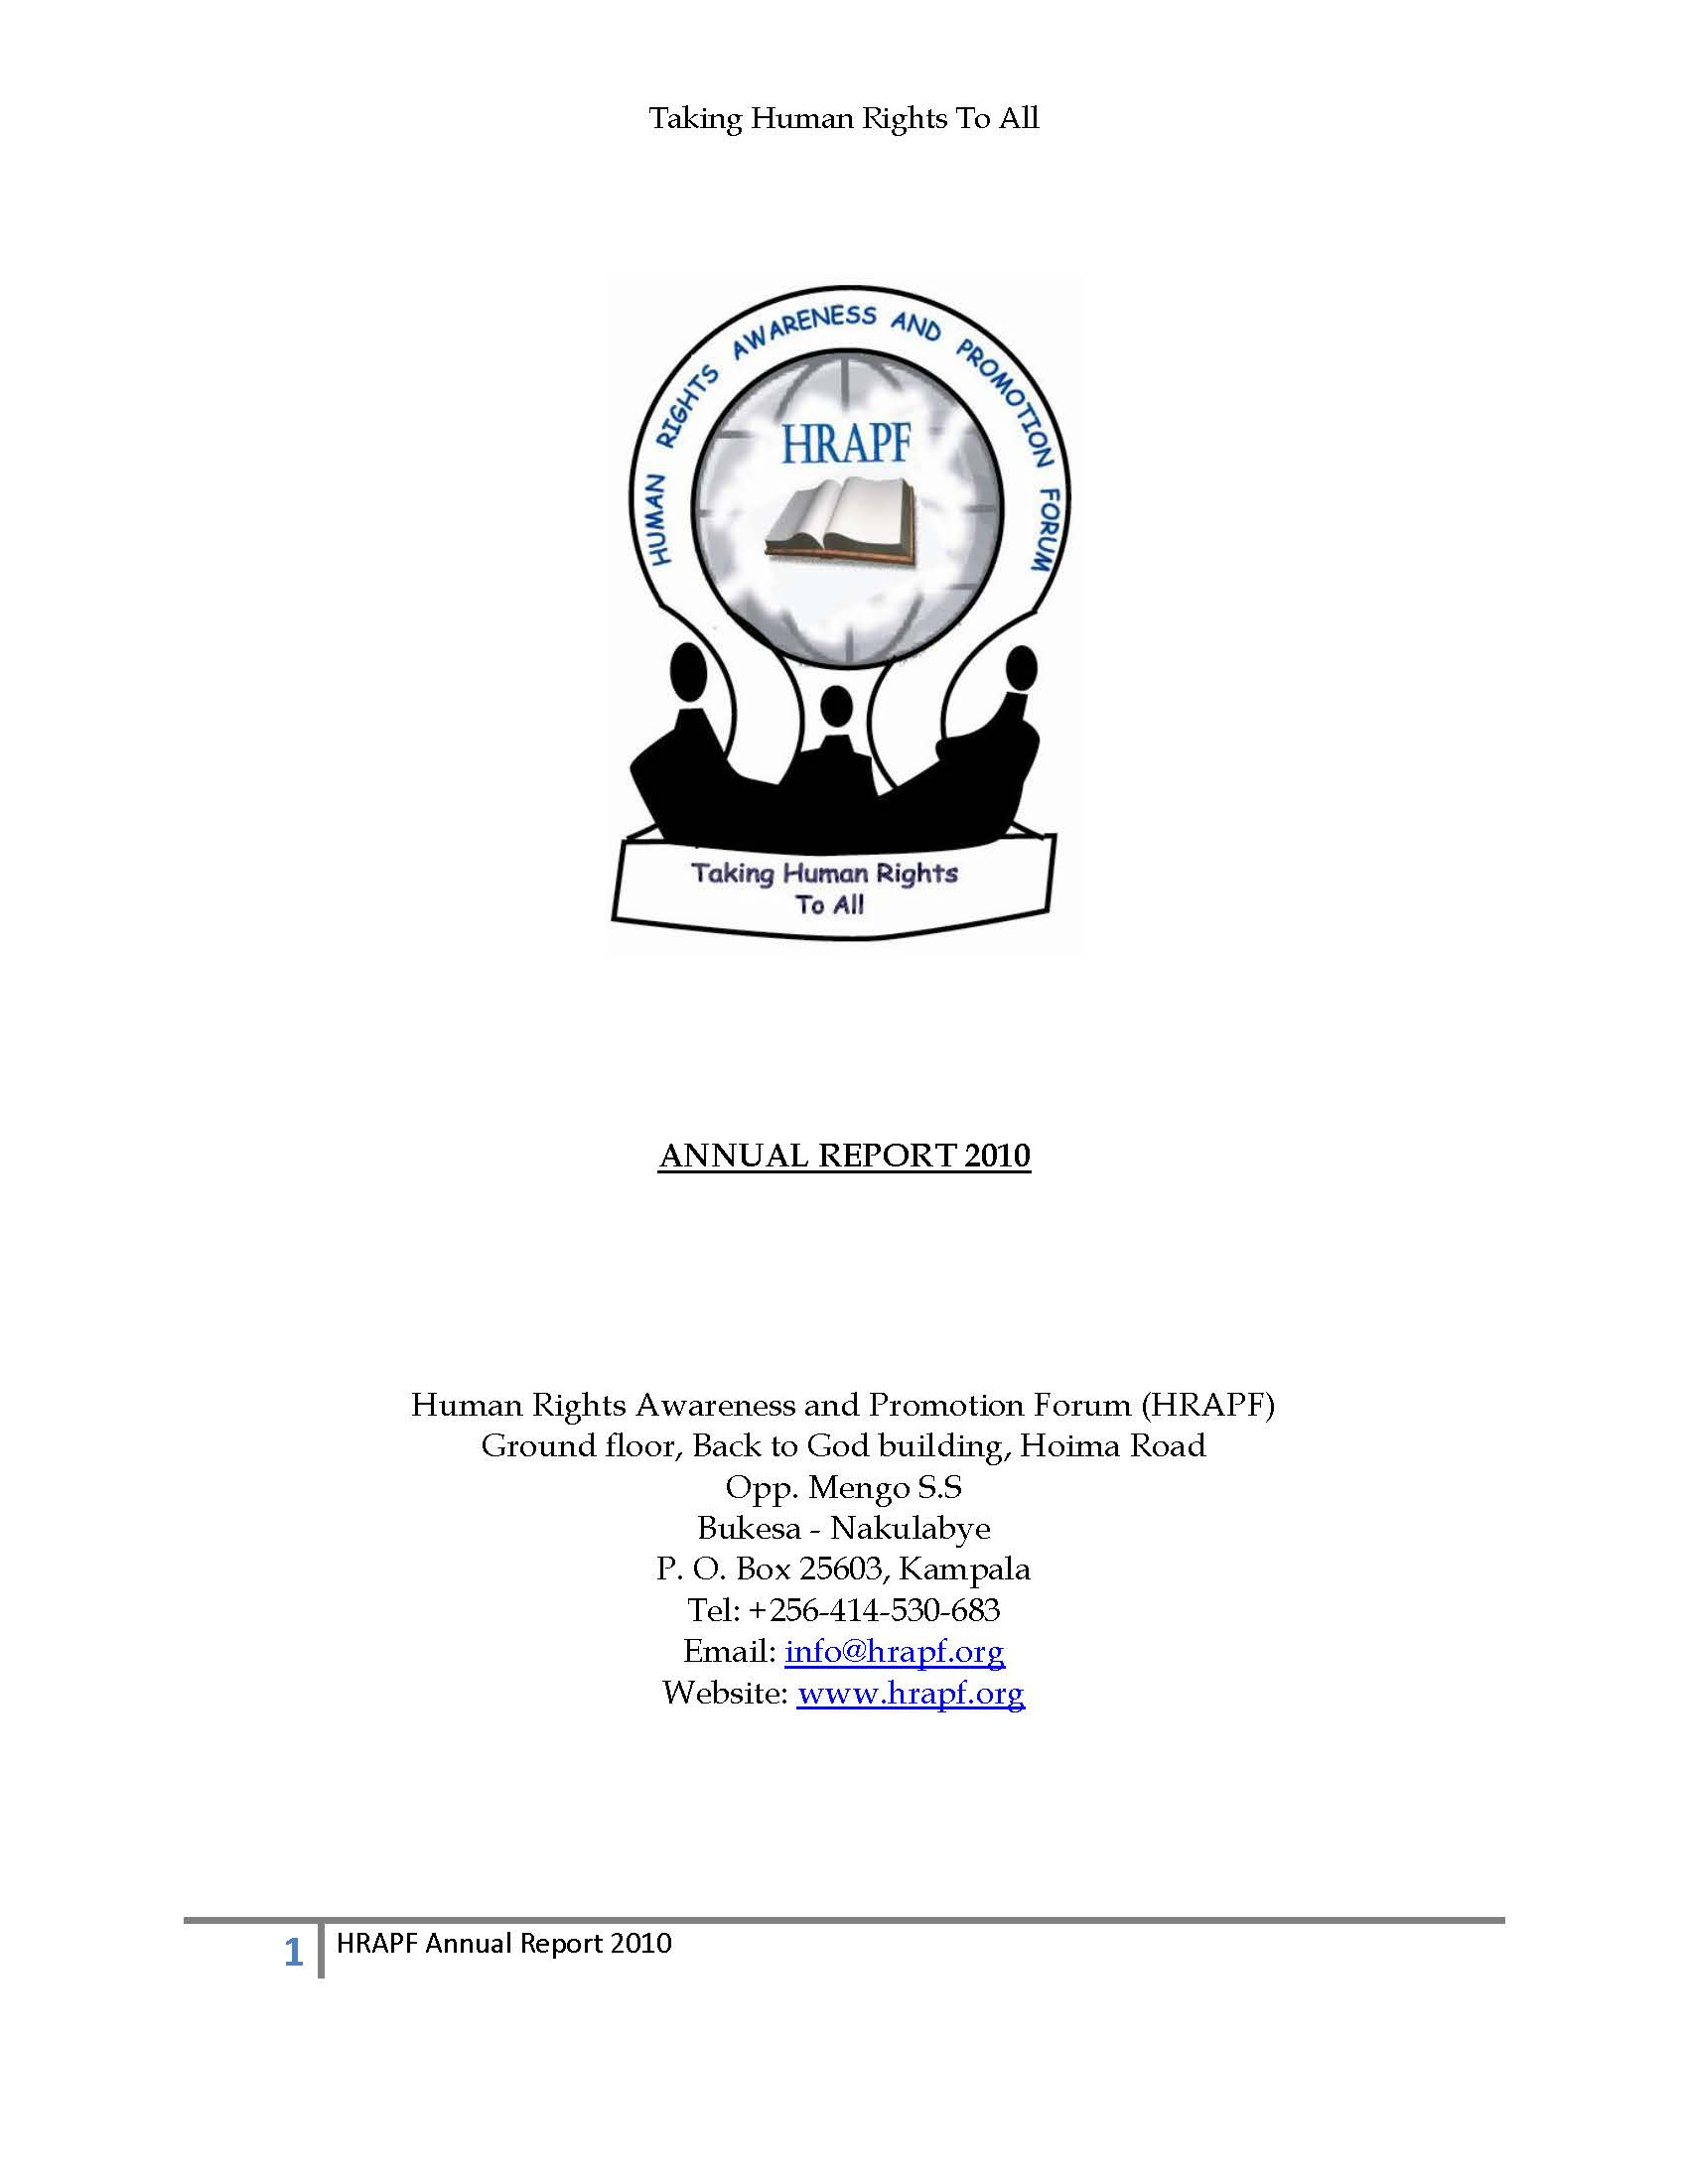 Annual report for the year 2010